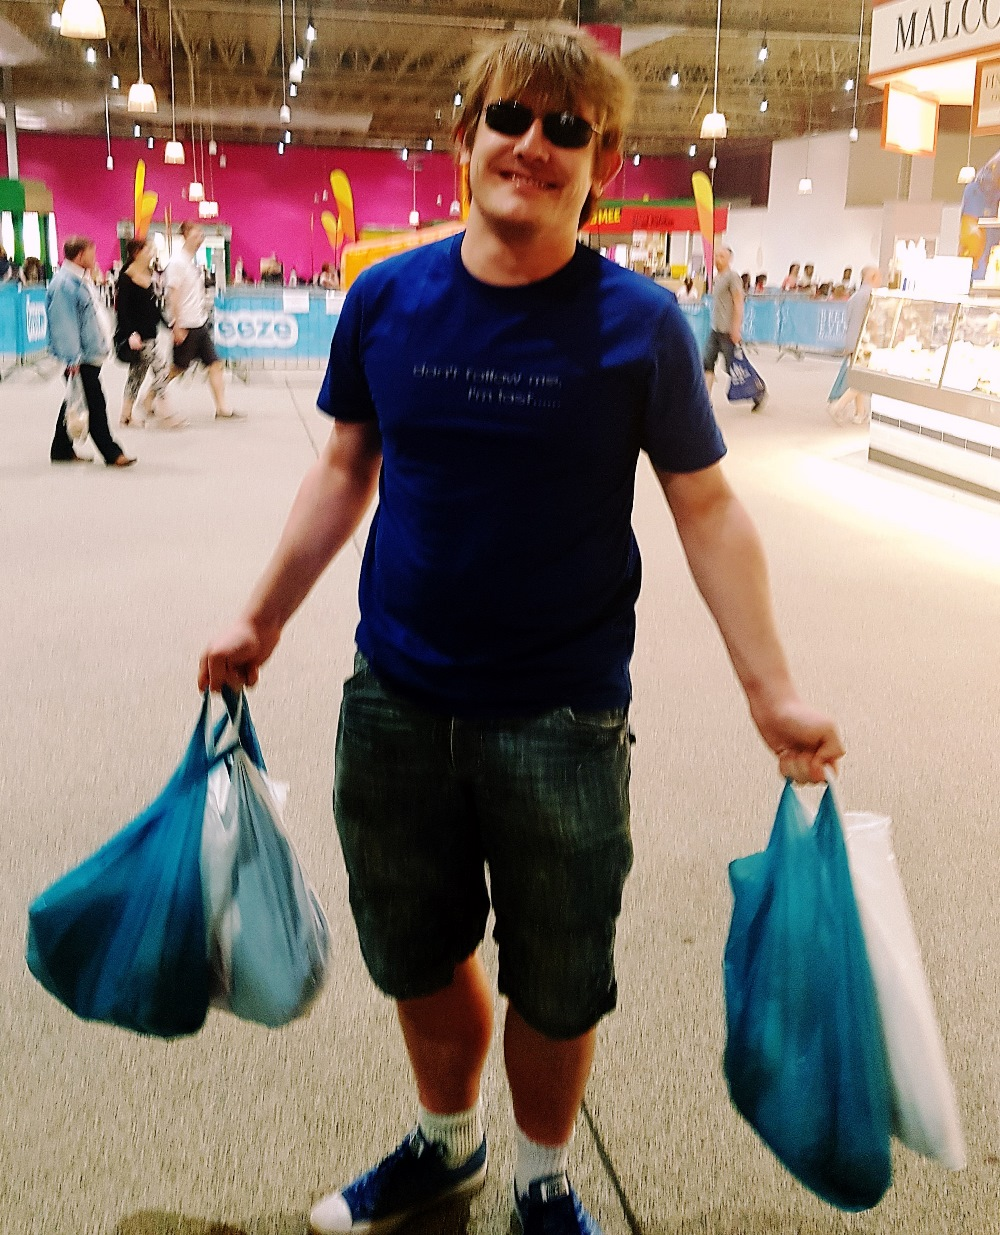 Loaded up with bags after a weekly shop at Kirkgate Market in Leeds